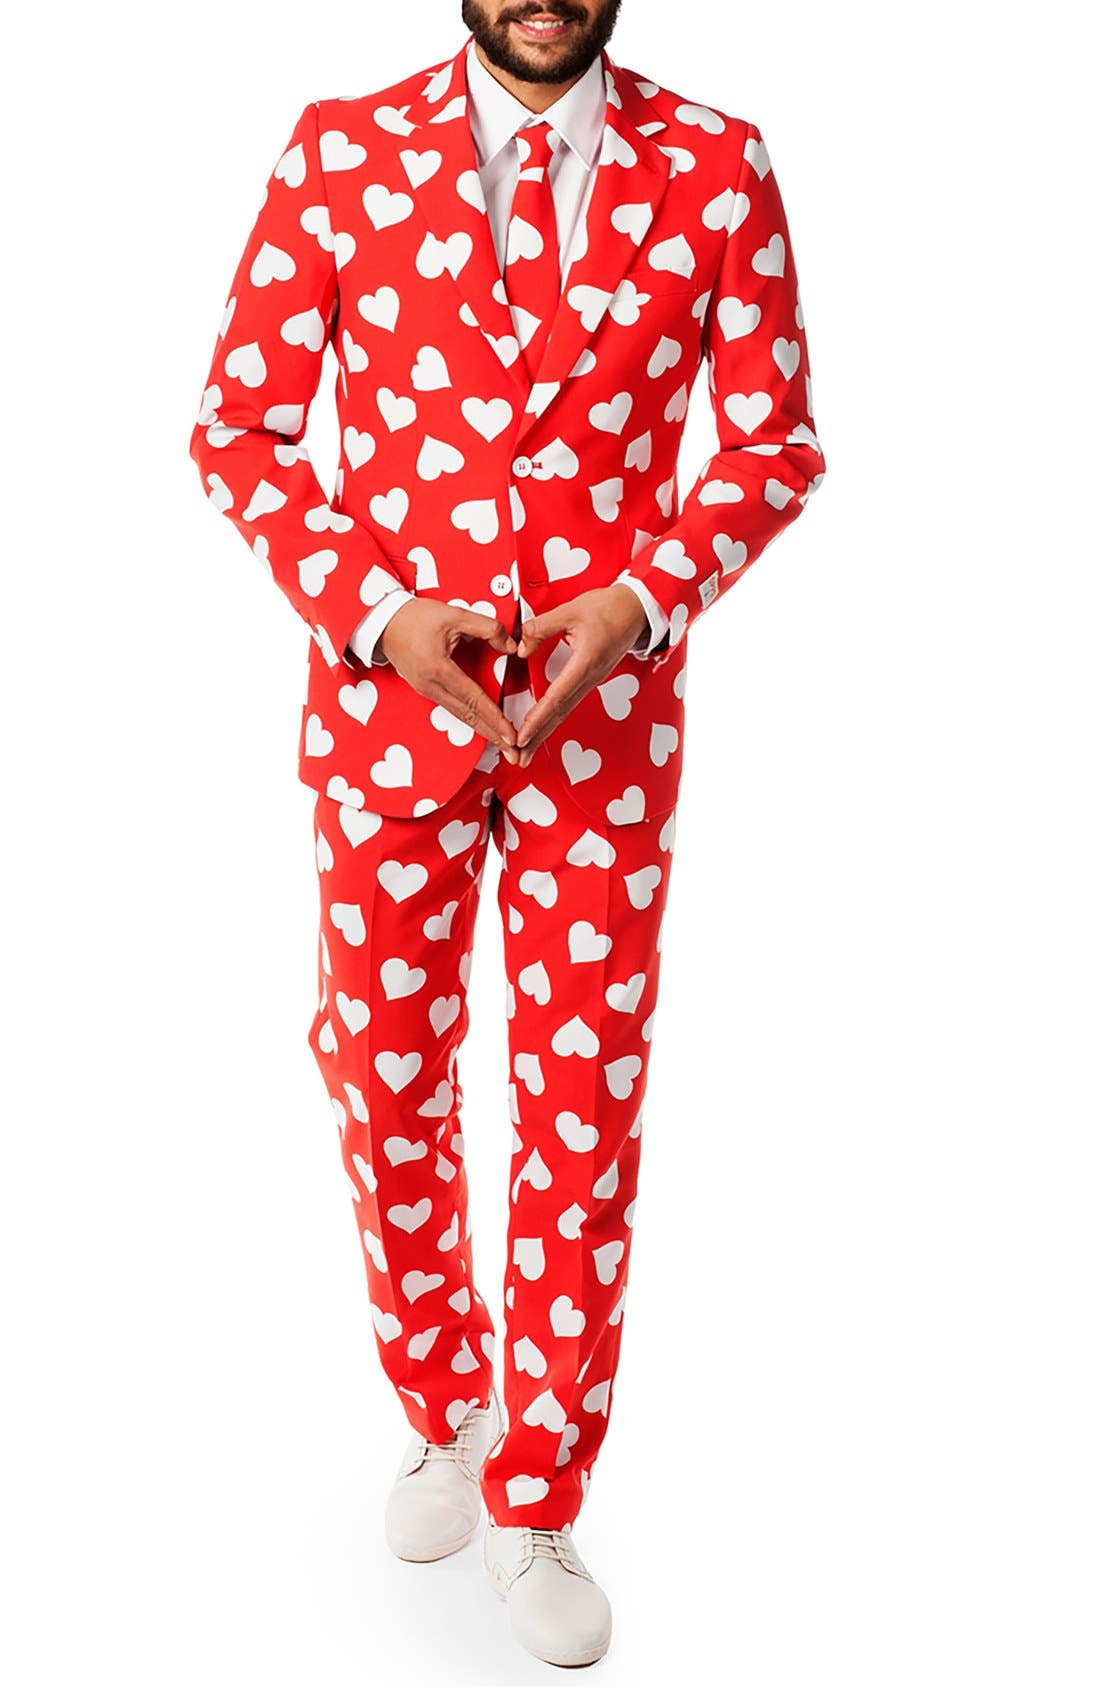 Alternate Image 1 Selected - OppoSuits 'Mr. Lover Lover' Trim Fit Two-Piece Suit with Tie